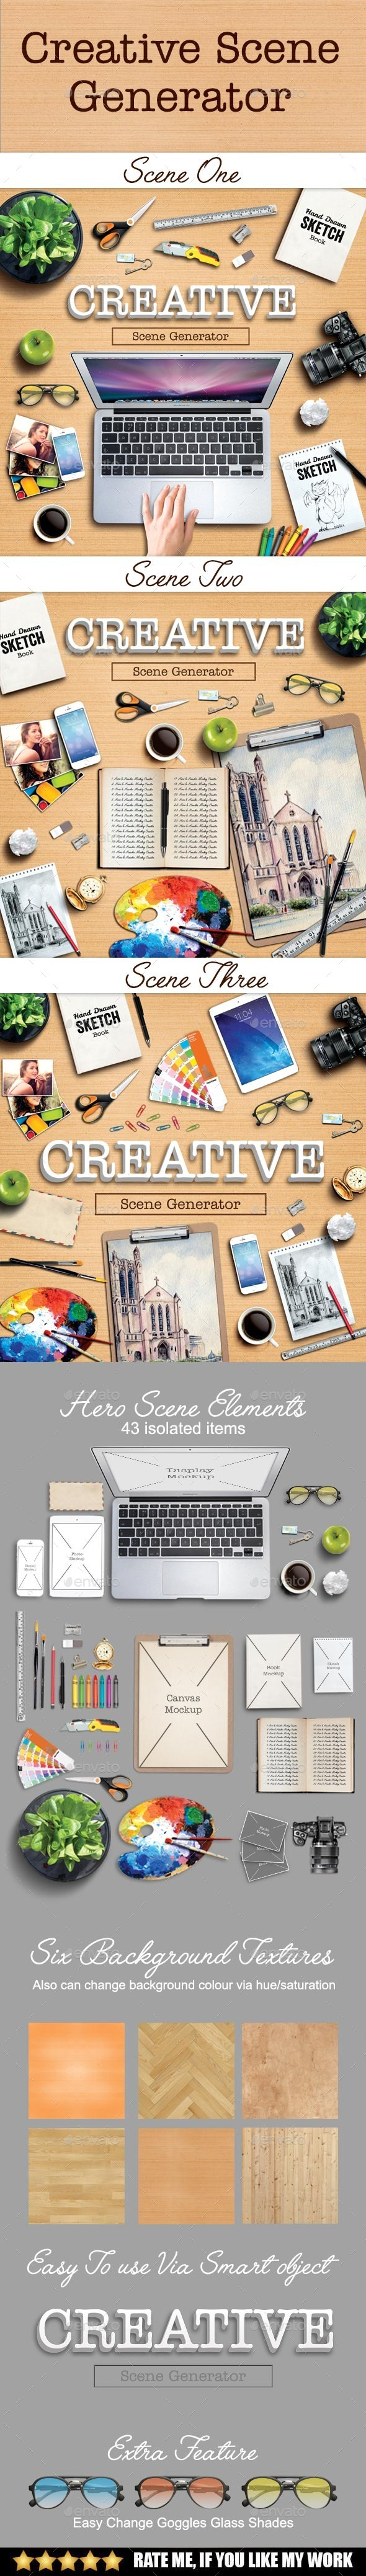 Creative scene generator - Hero Images Graphics